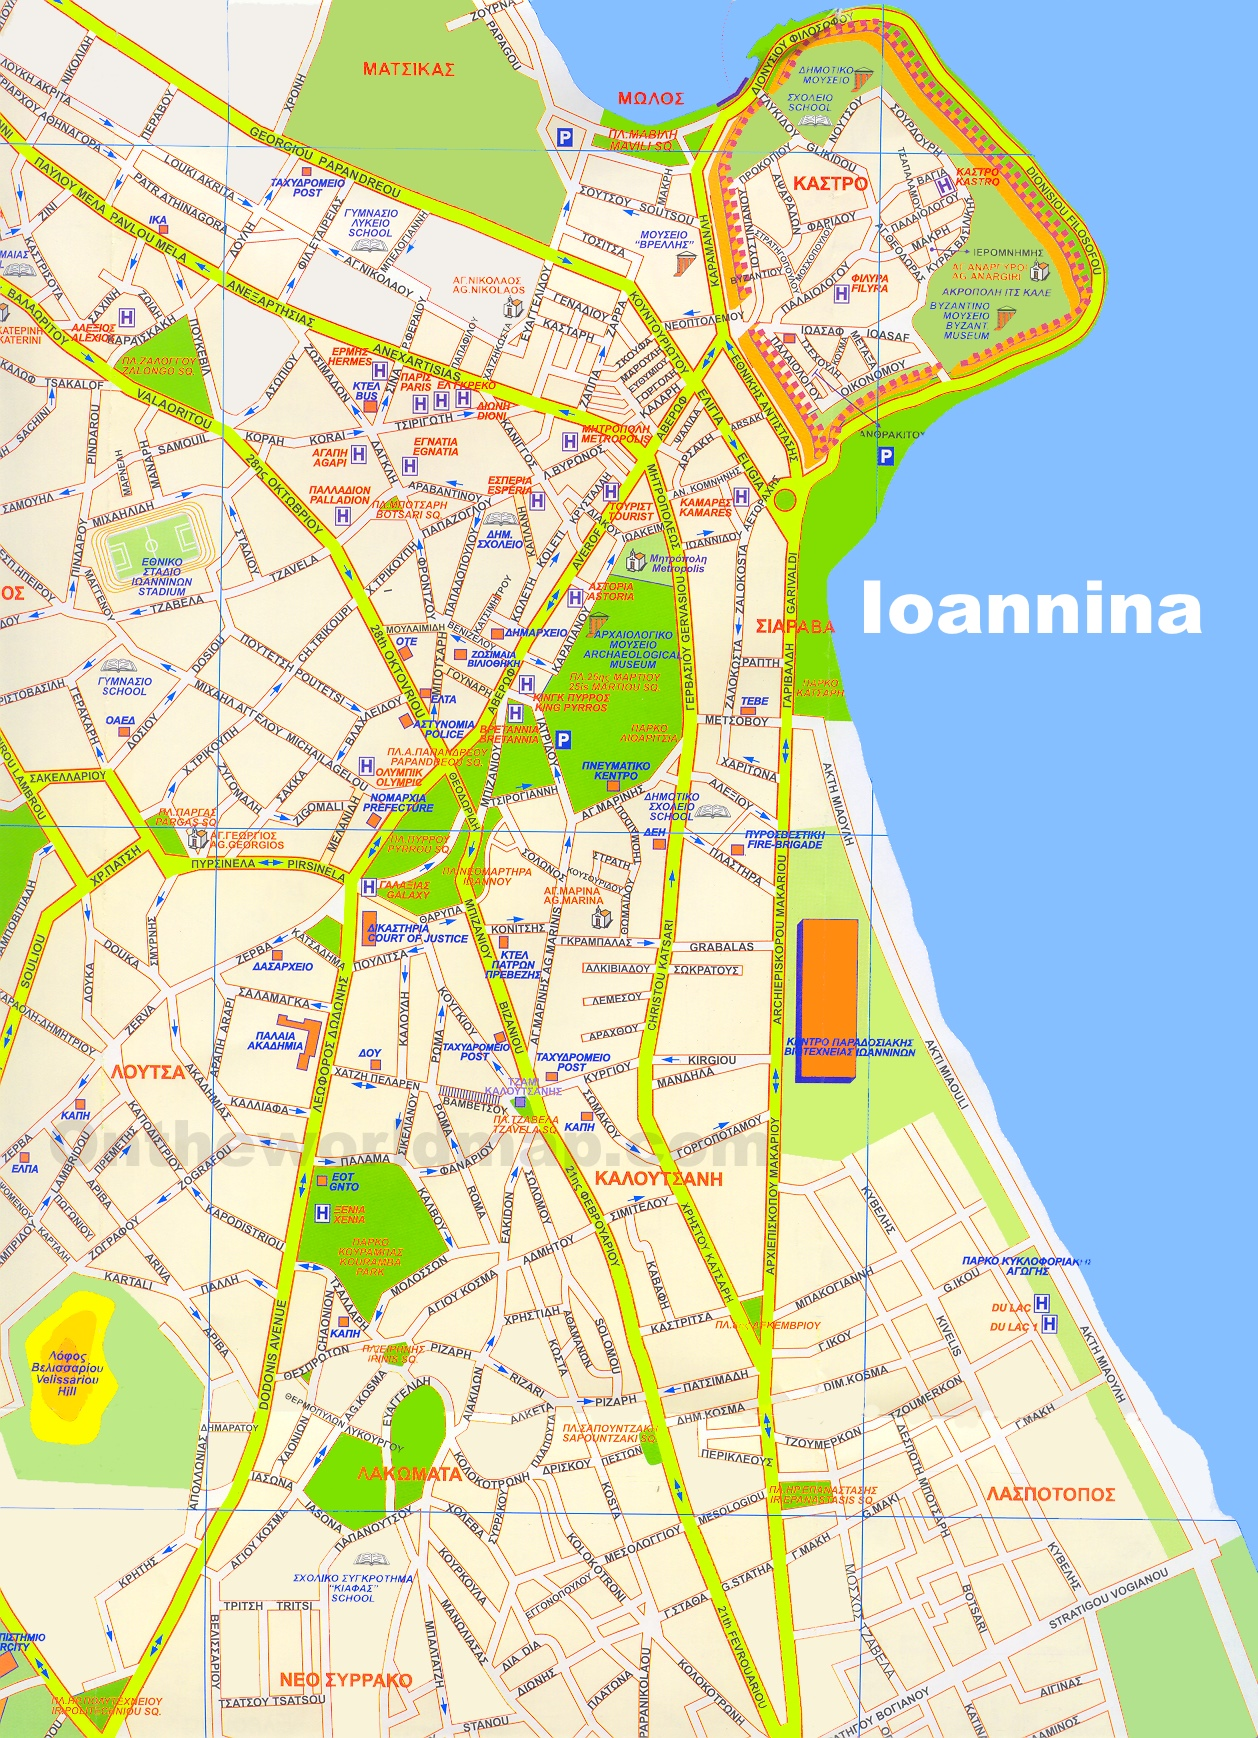 Ioannina Greece Map.Ioannina Hotels And Sightseeings Map